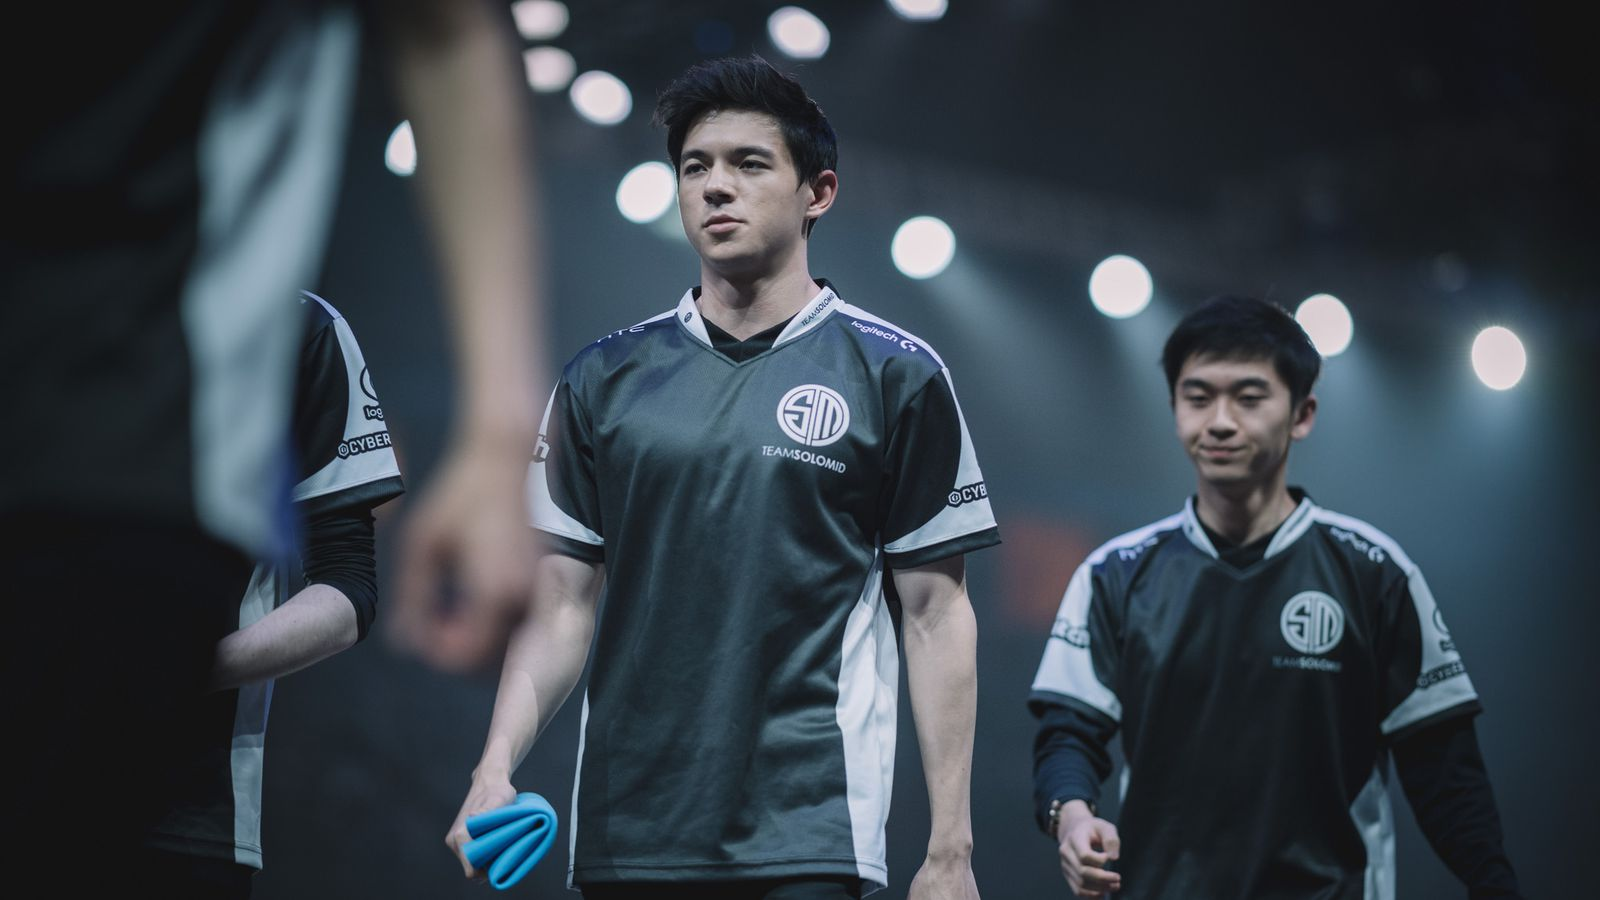 MSI Group Stage Day 3 live blog: Scores, highlights and news